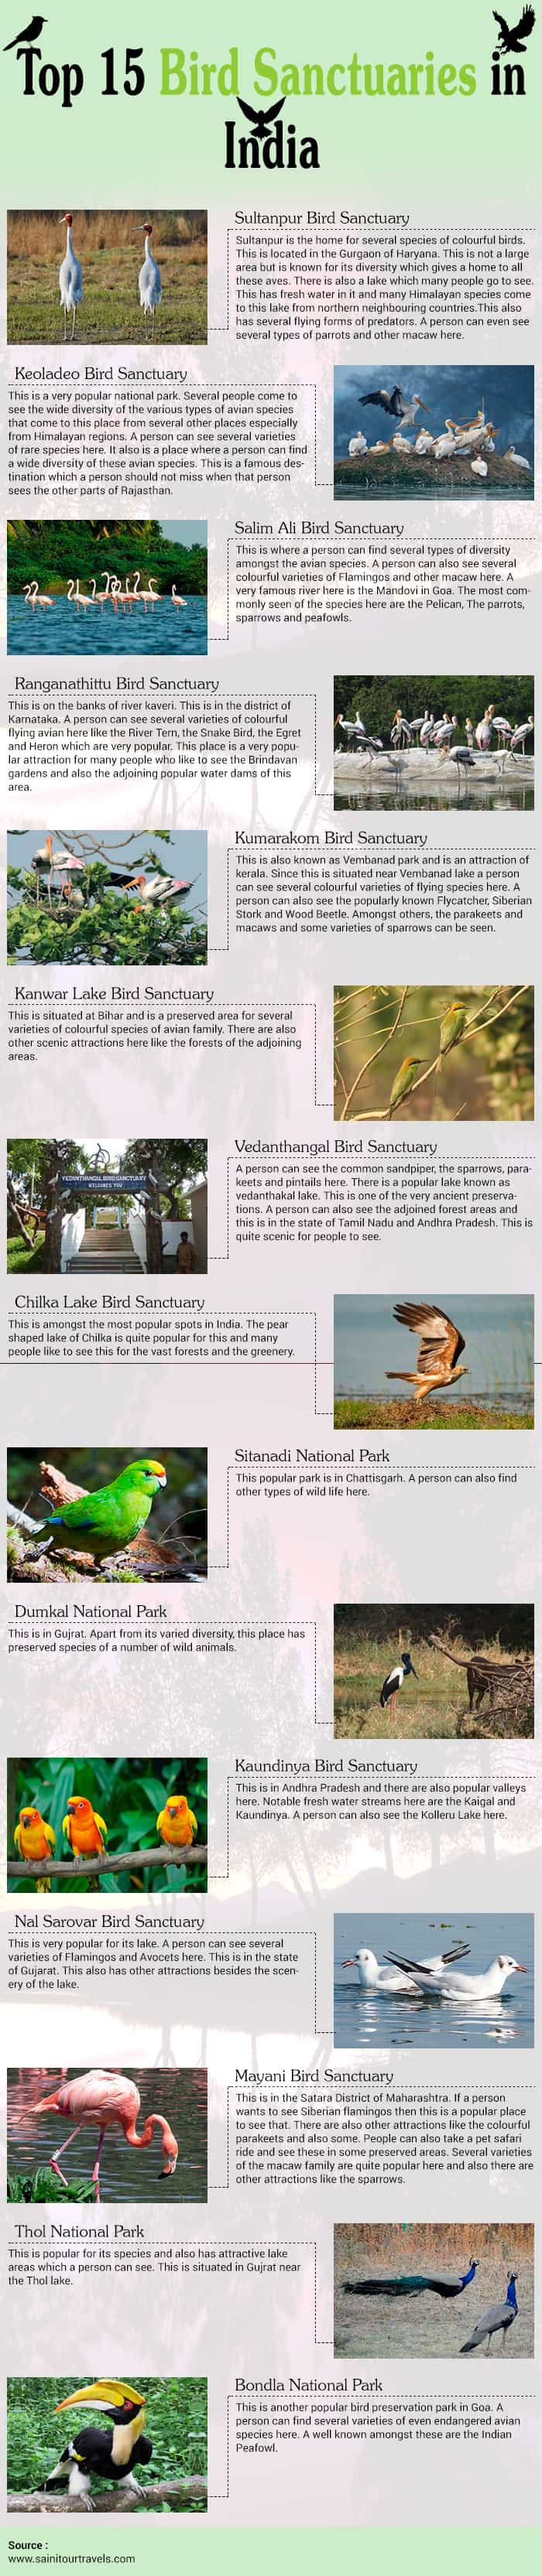 Top 15 Bird Sanctuaries in India